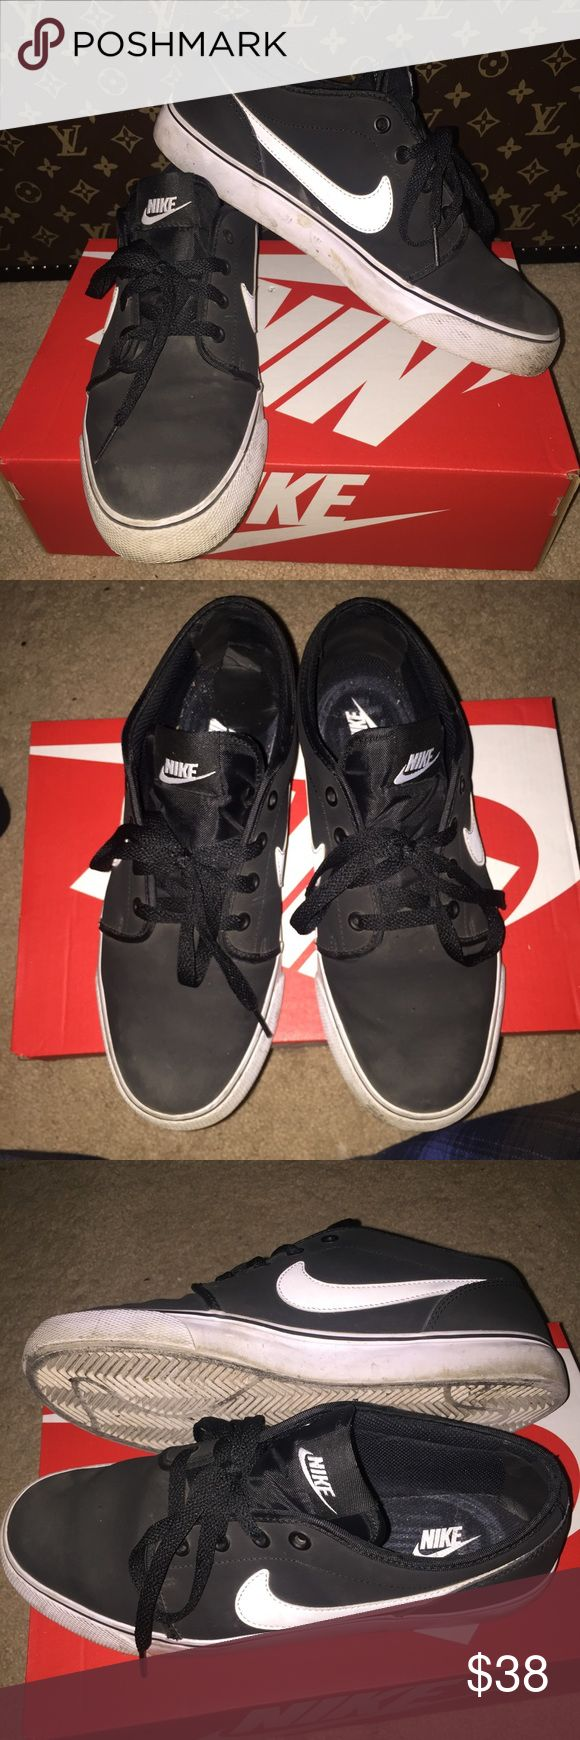 NIKE SB CANVAS JANOSKI Authentic Nike shoes. Black color with white Nike logo. No pen or paint marks. Worn good condition. Canvas bottoms like Vans sneakers. Canvas skate shoe. Stephan janoski. Shoe box included. ⭐️Pls view my Closet About section for reviews and comments. Price firm unless bundled. Nike Shoes Sneakers